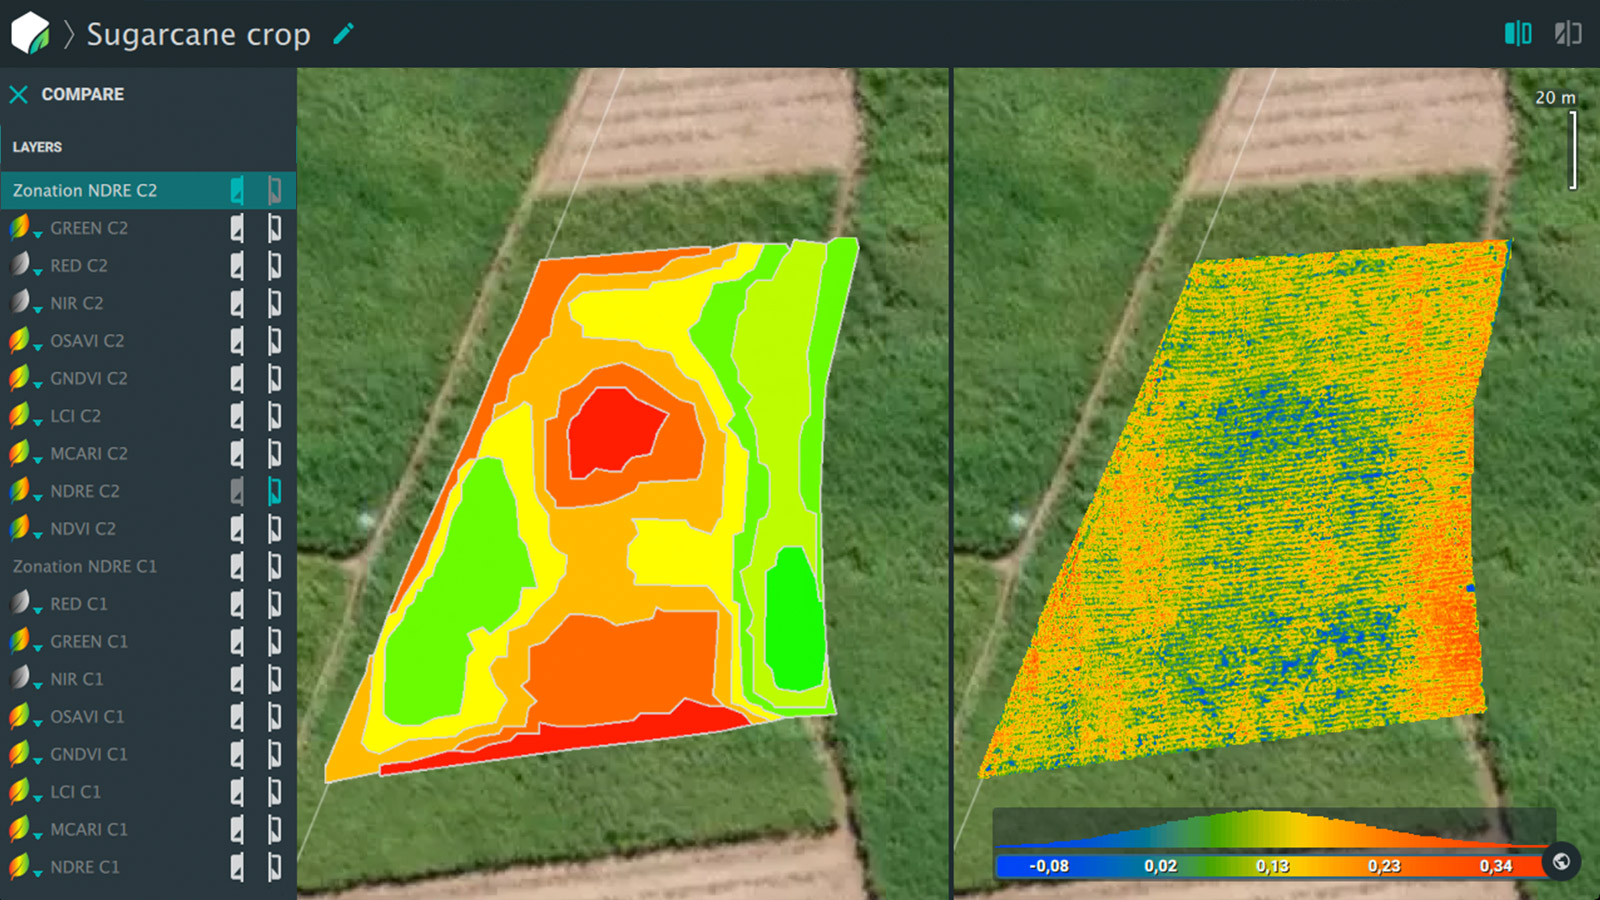 Pix4Dfields comparison showing NDVI and NDRE indices